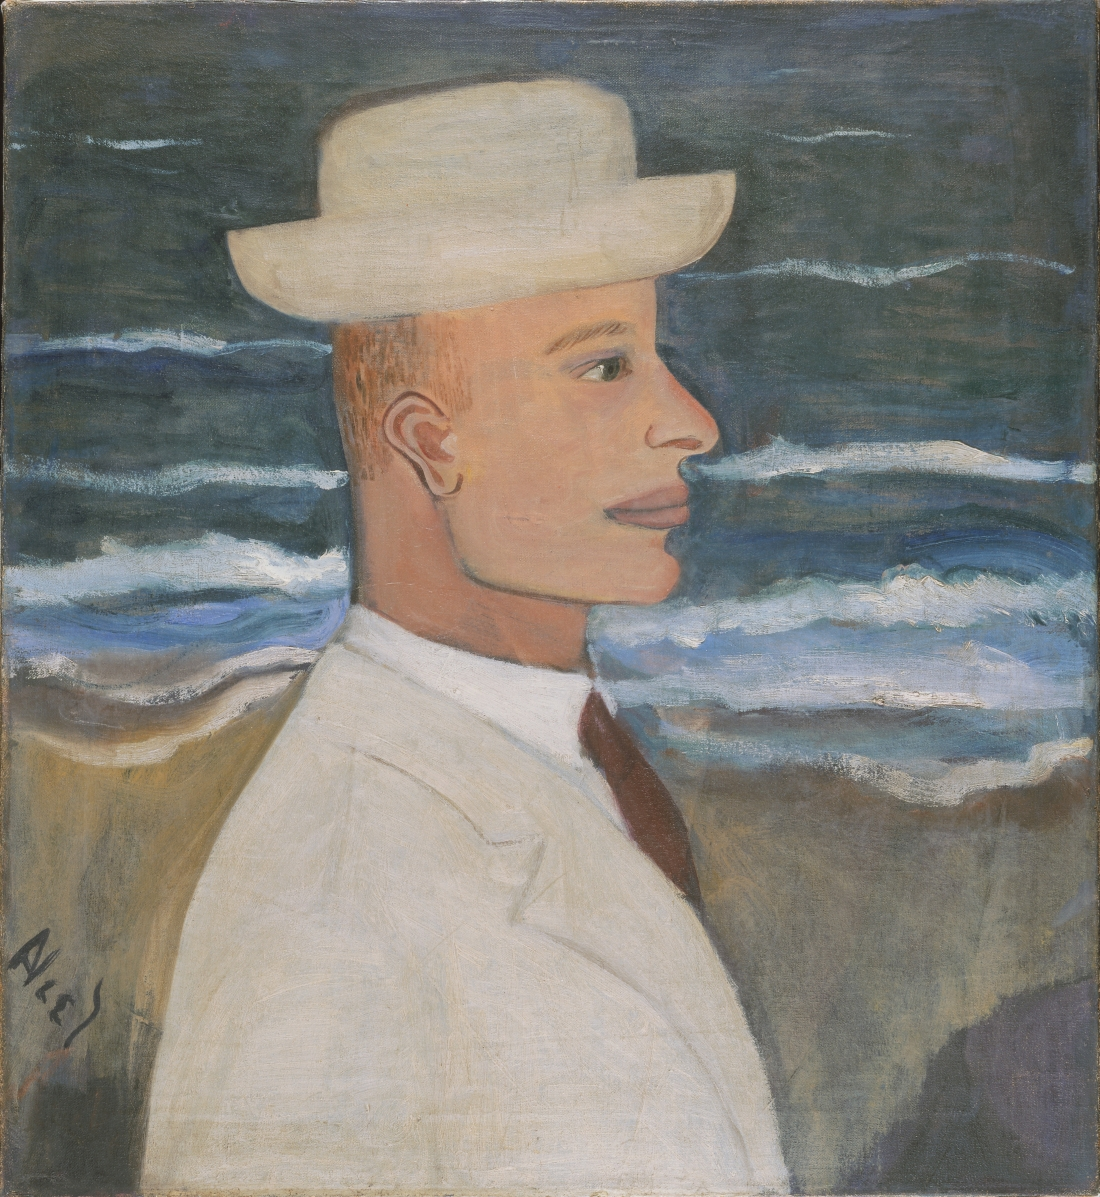 Portrait of John with Hat, 1935, by Alice Neel, American, 1900 - 1984. Oil on canvas, 23 1/2 x 21 1/2 inches. Philadelphia Museum of Art: Gift of the estate of Arthur M. Bullowa, 1993-119-2